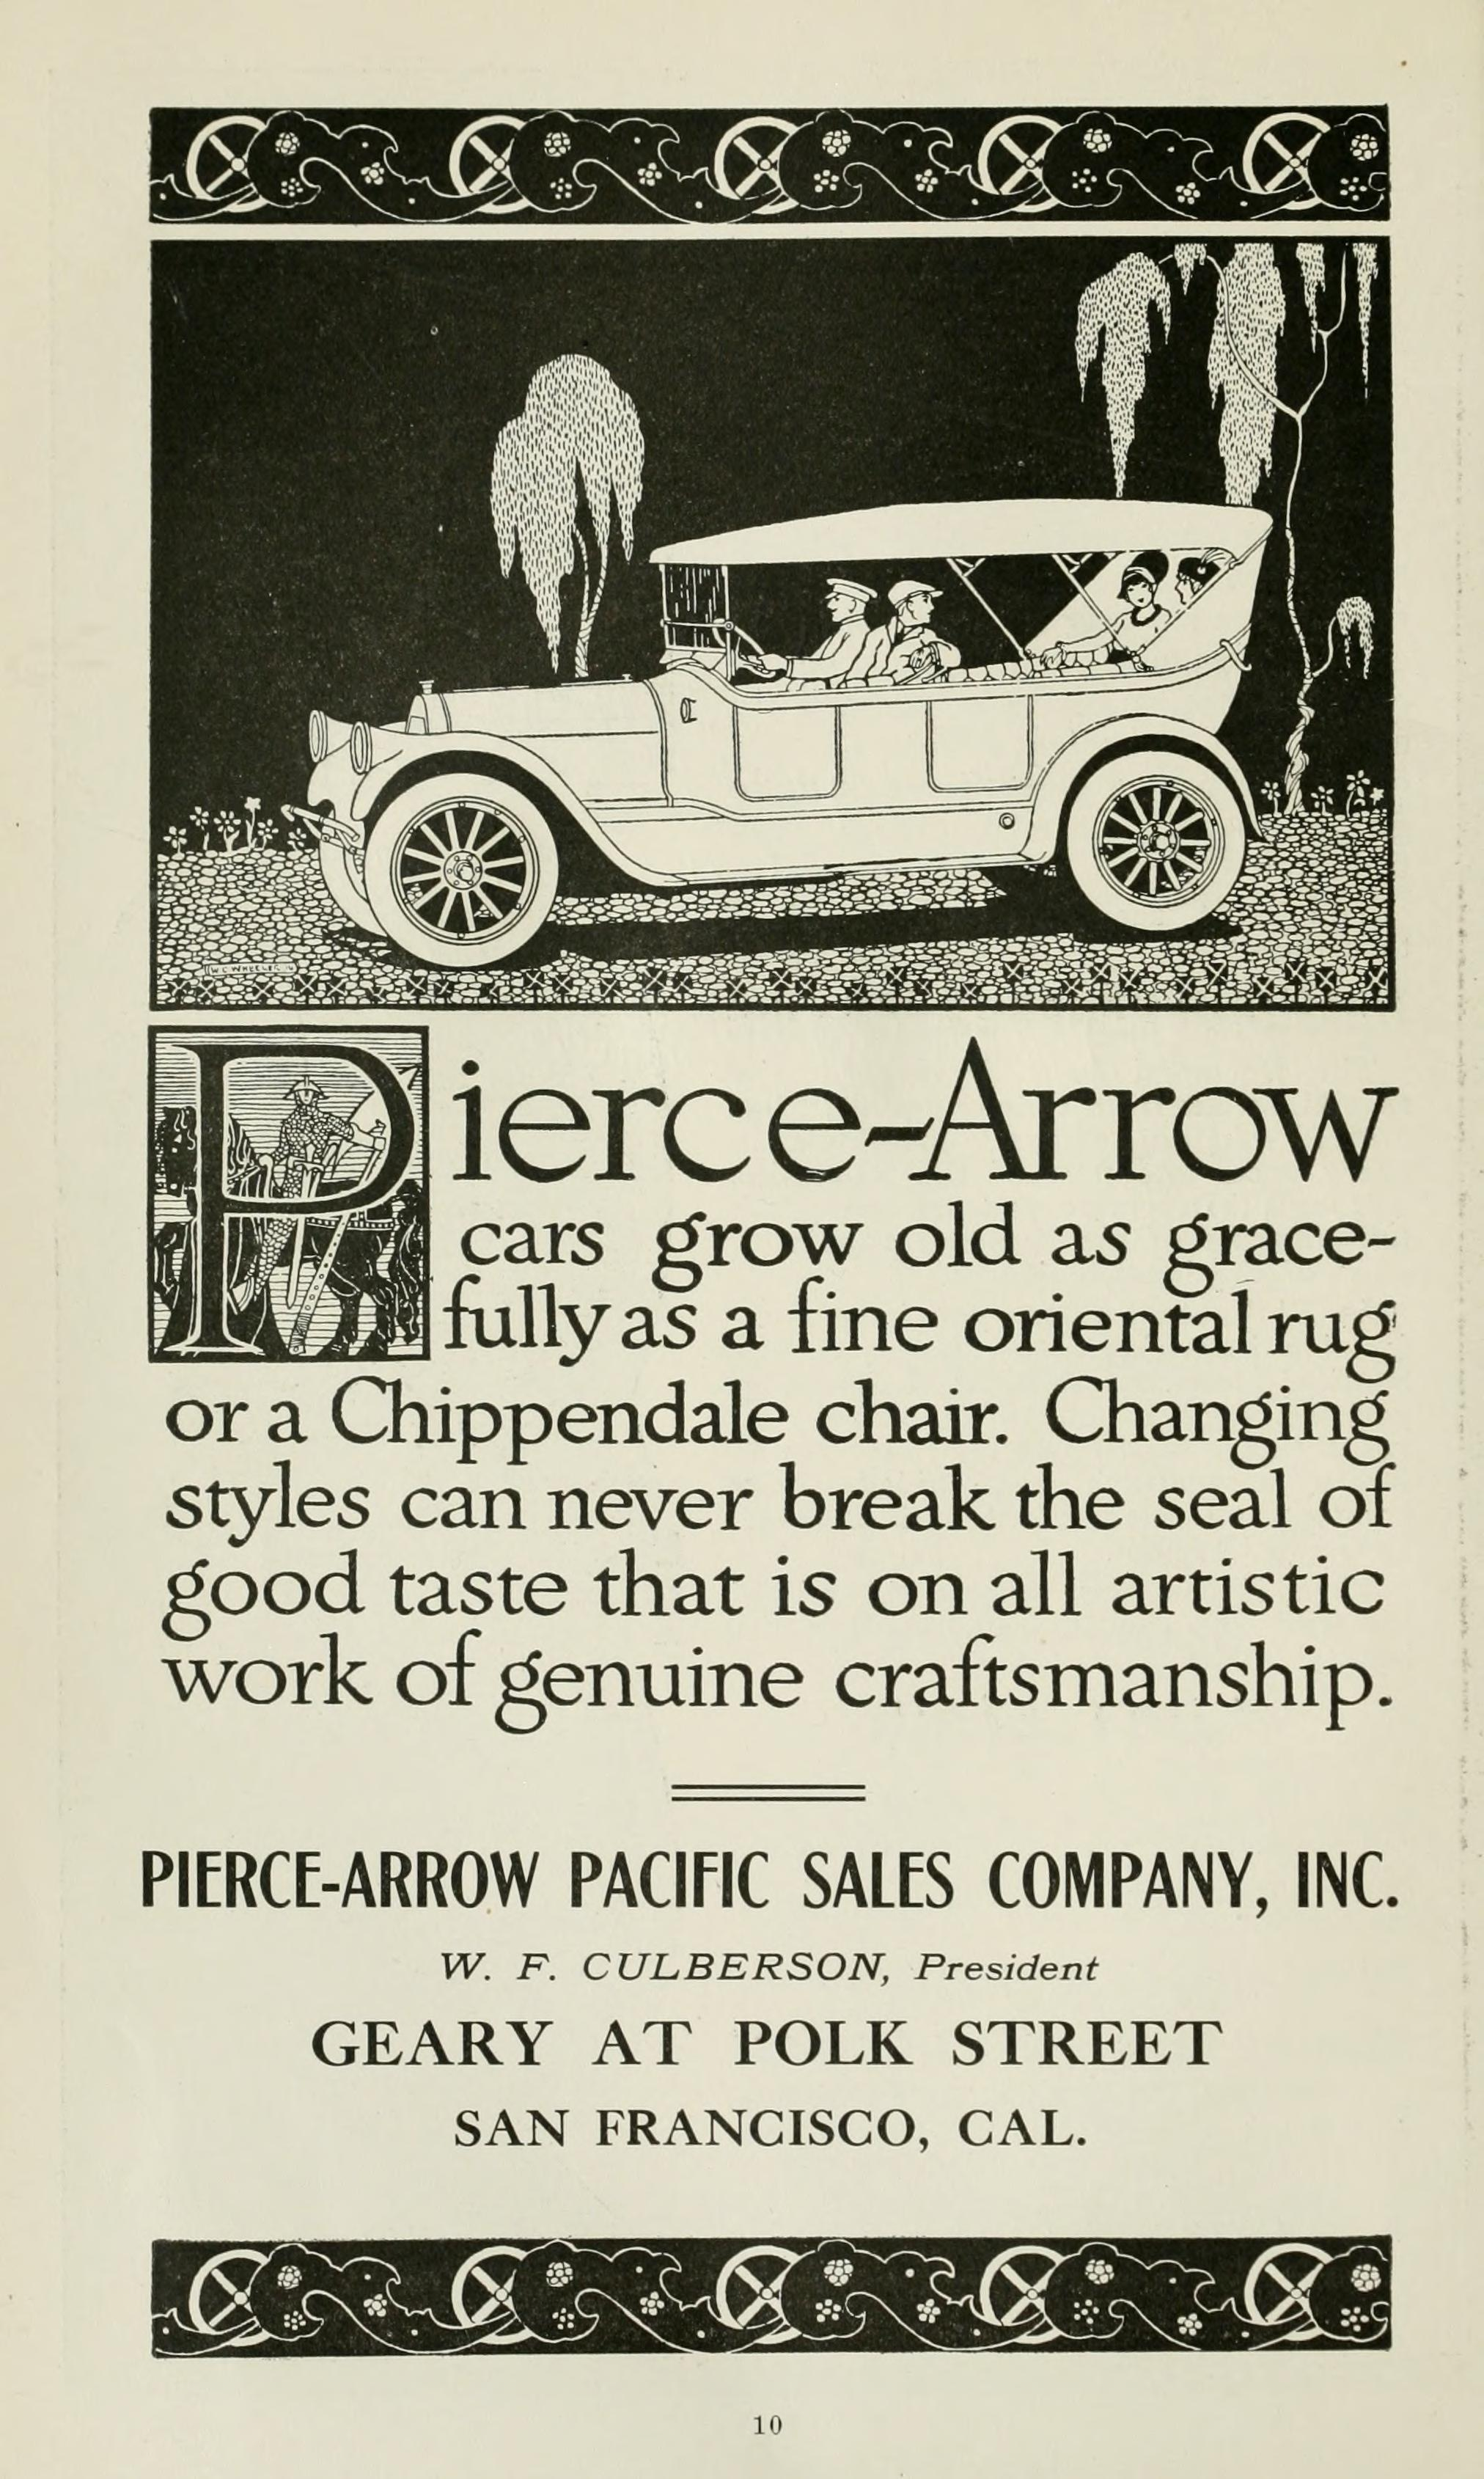 File:Pierce-arrow pacific sales company san francisco ...